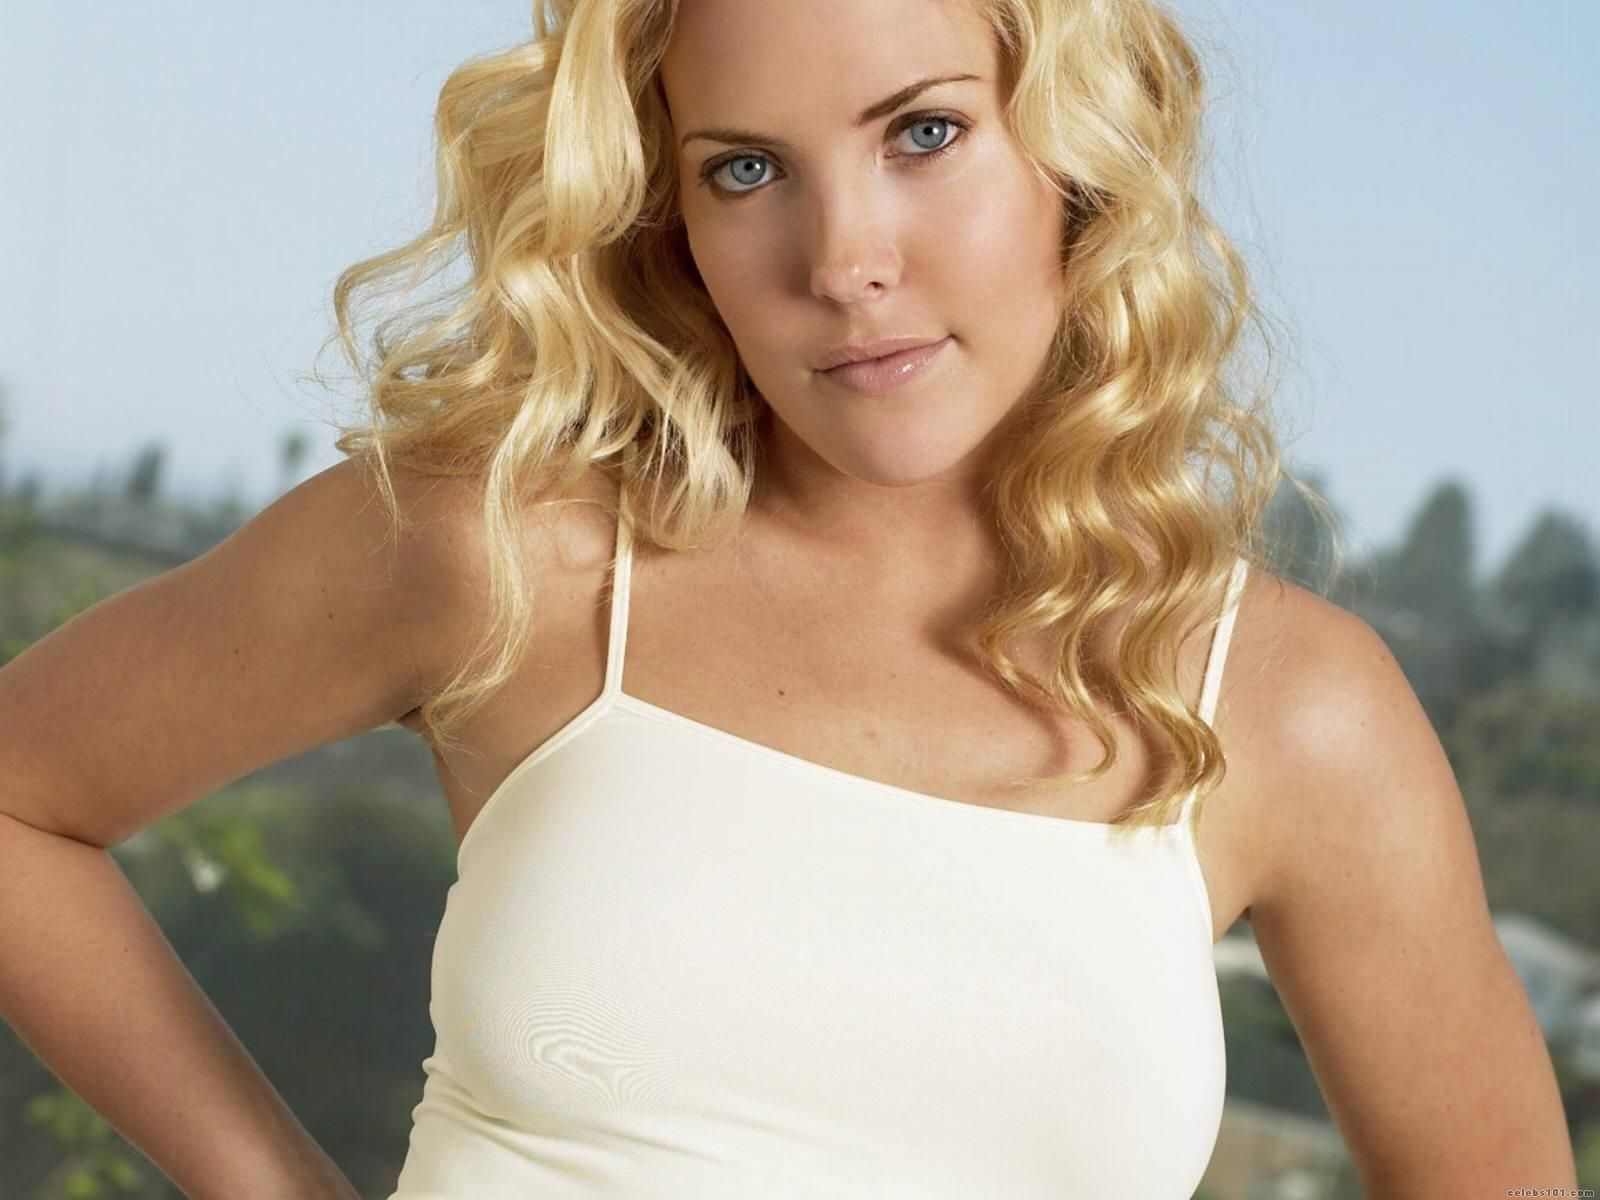 mercedes mcnab supernatural